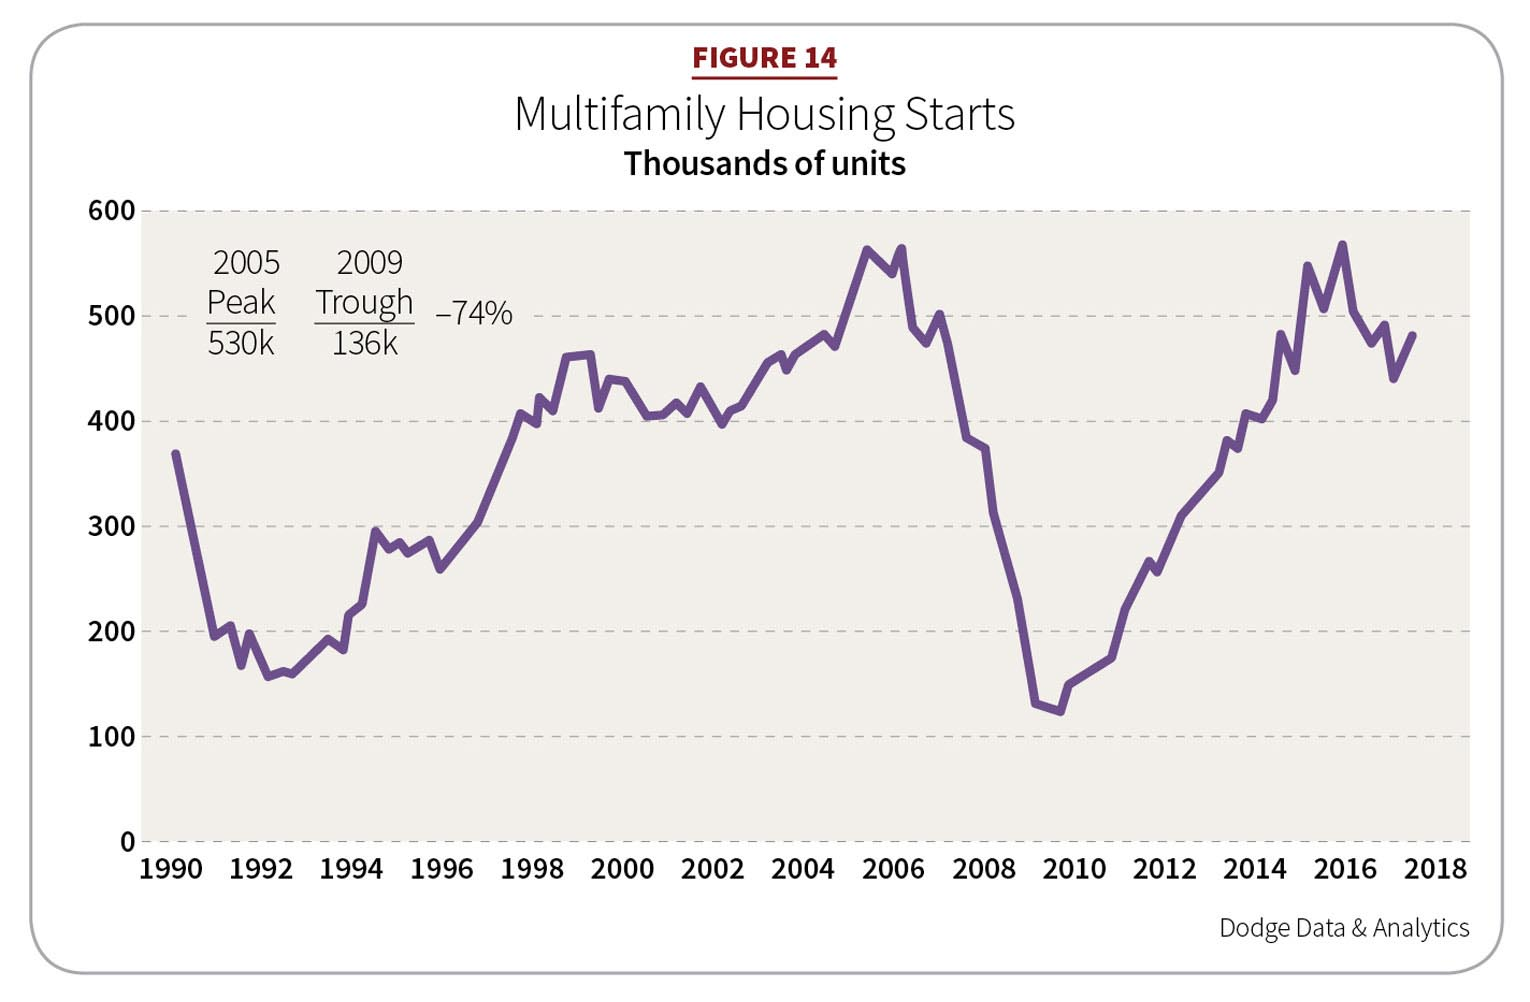 Figure 14: Multifamily Housing Starts